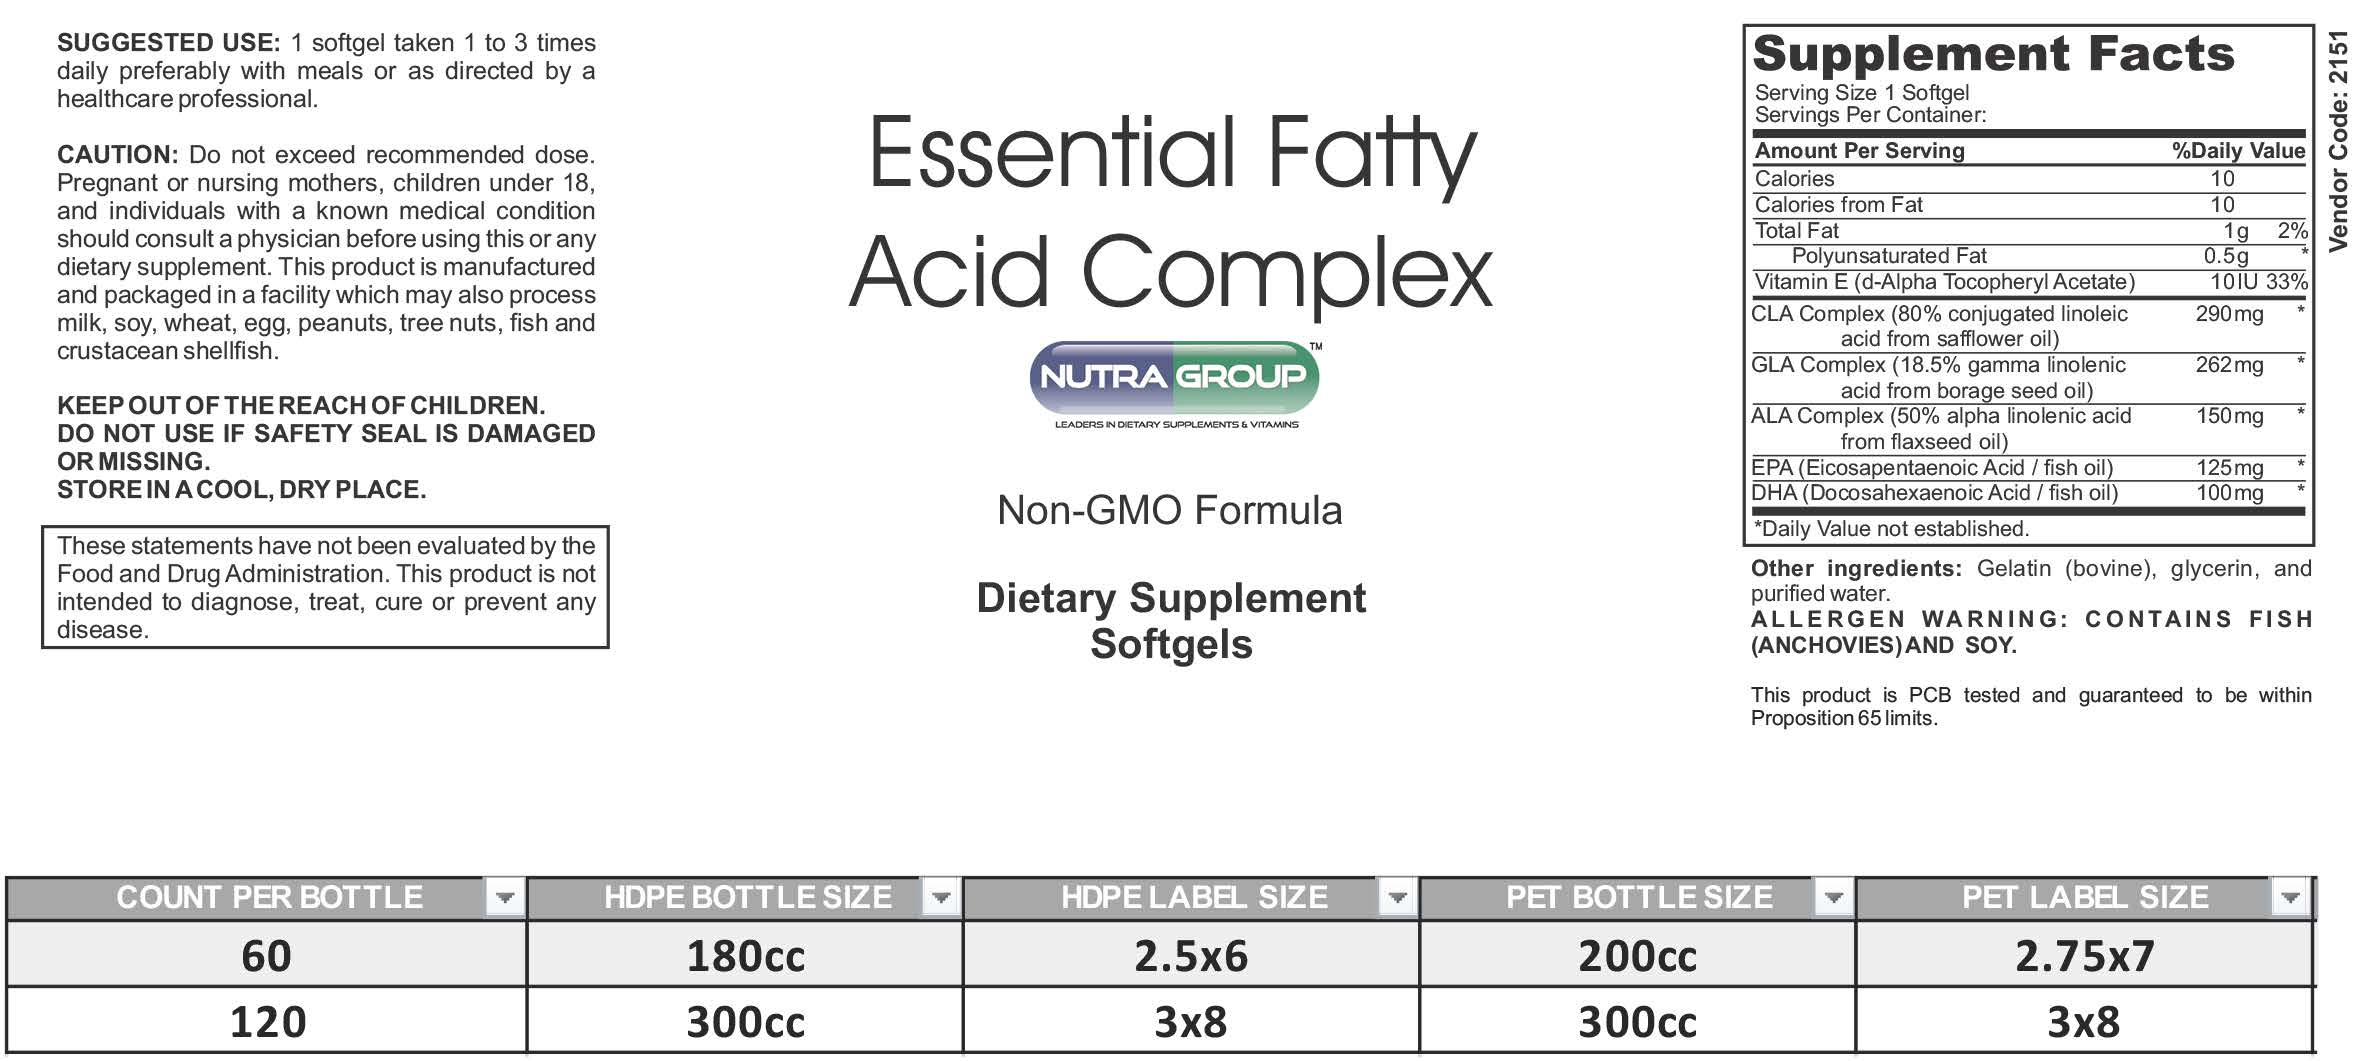 Private label EFA supplements